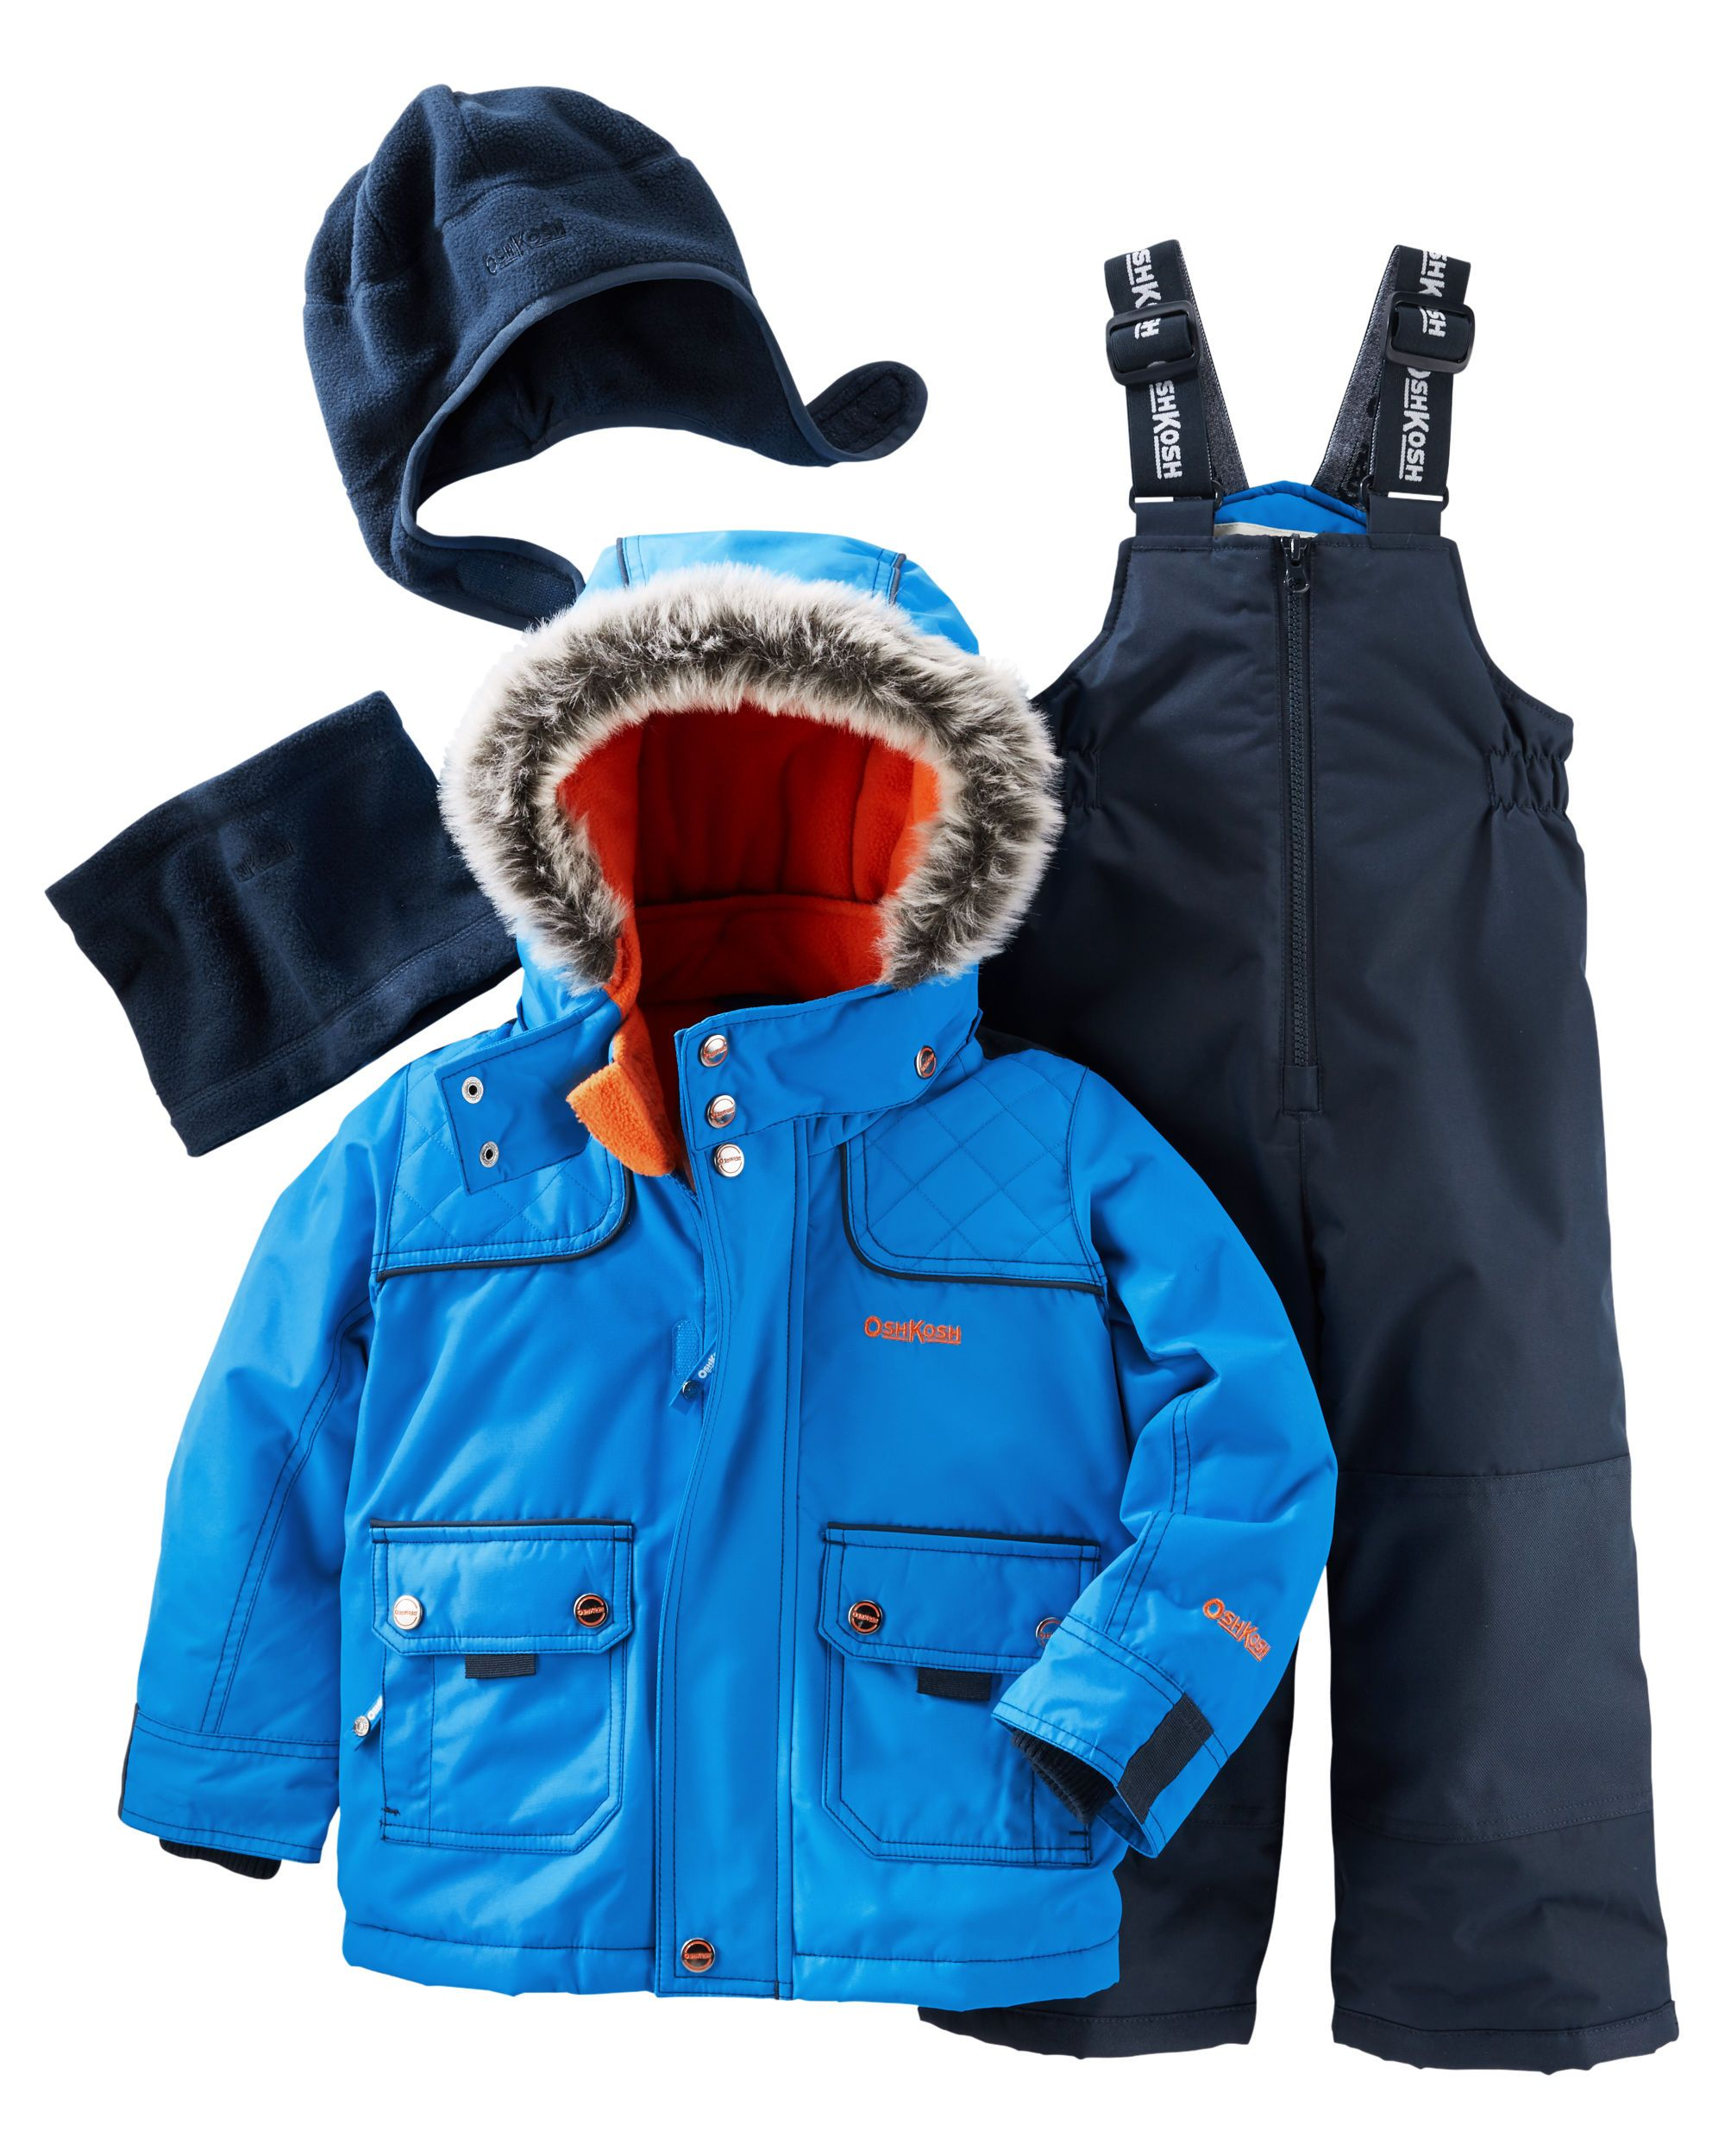 9a5def23101 Toddler Boy 4-Piece Fleece-Lined Snowsuit Set | Carter's OshKosh Canada